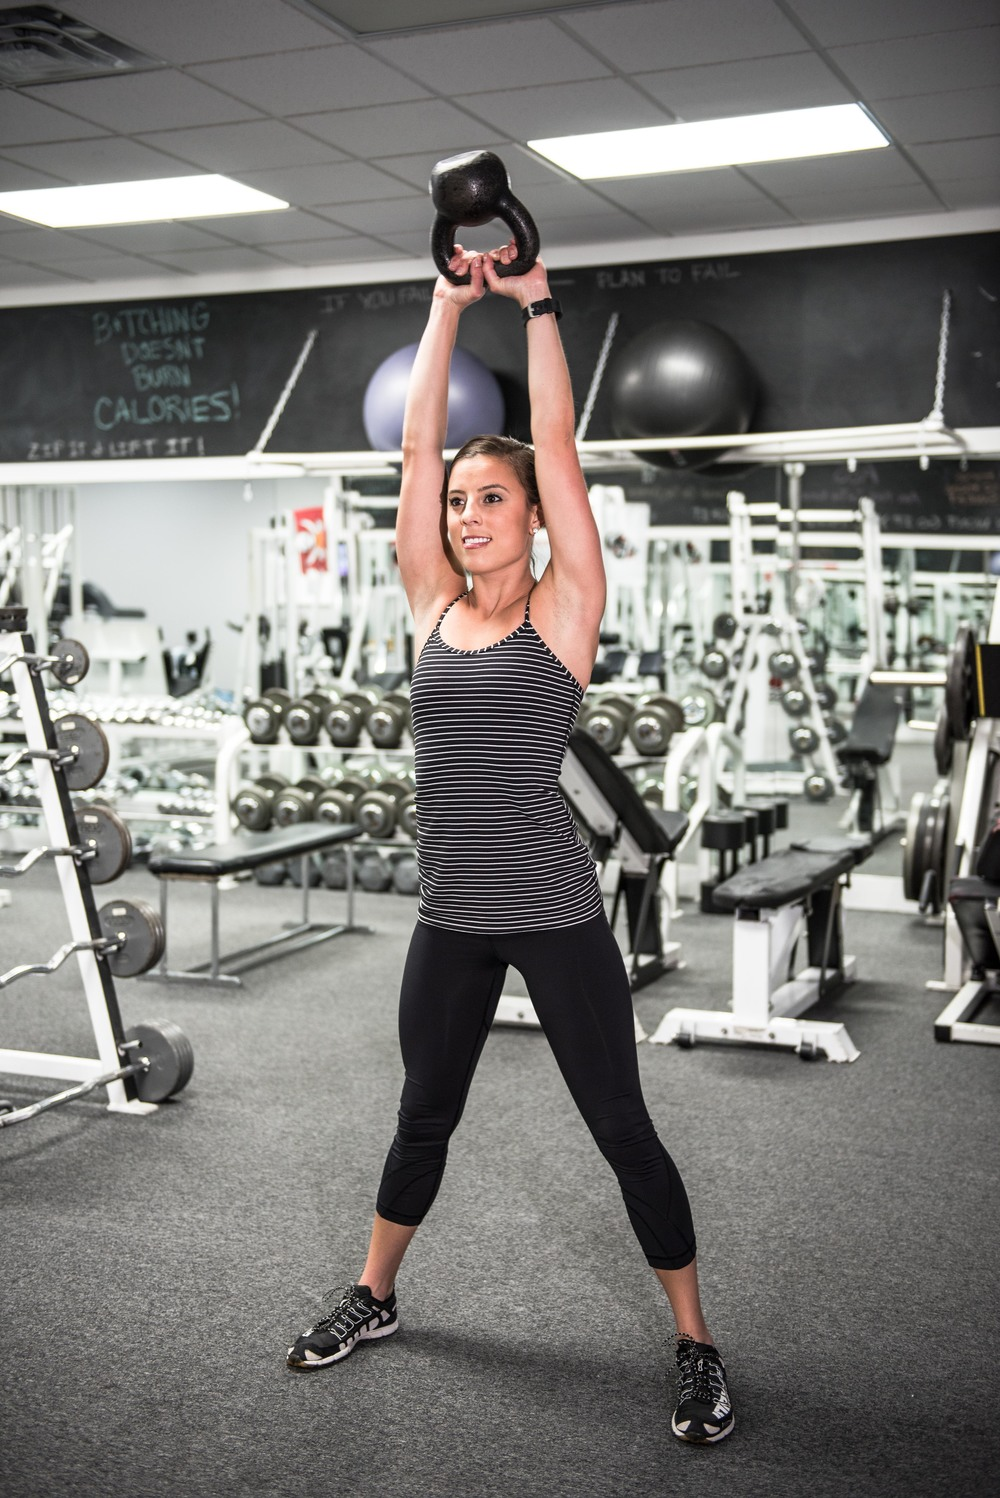 Top phase of the Kettle Bell Swing (Exercise #1)